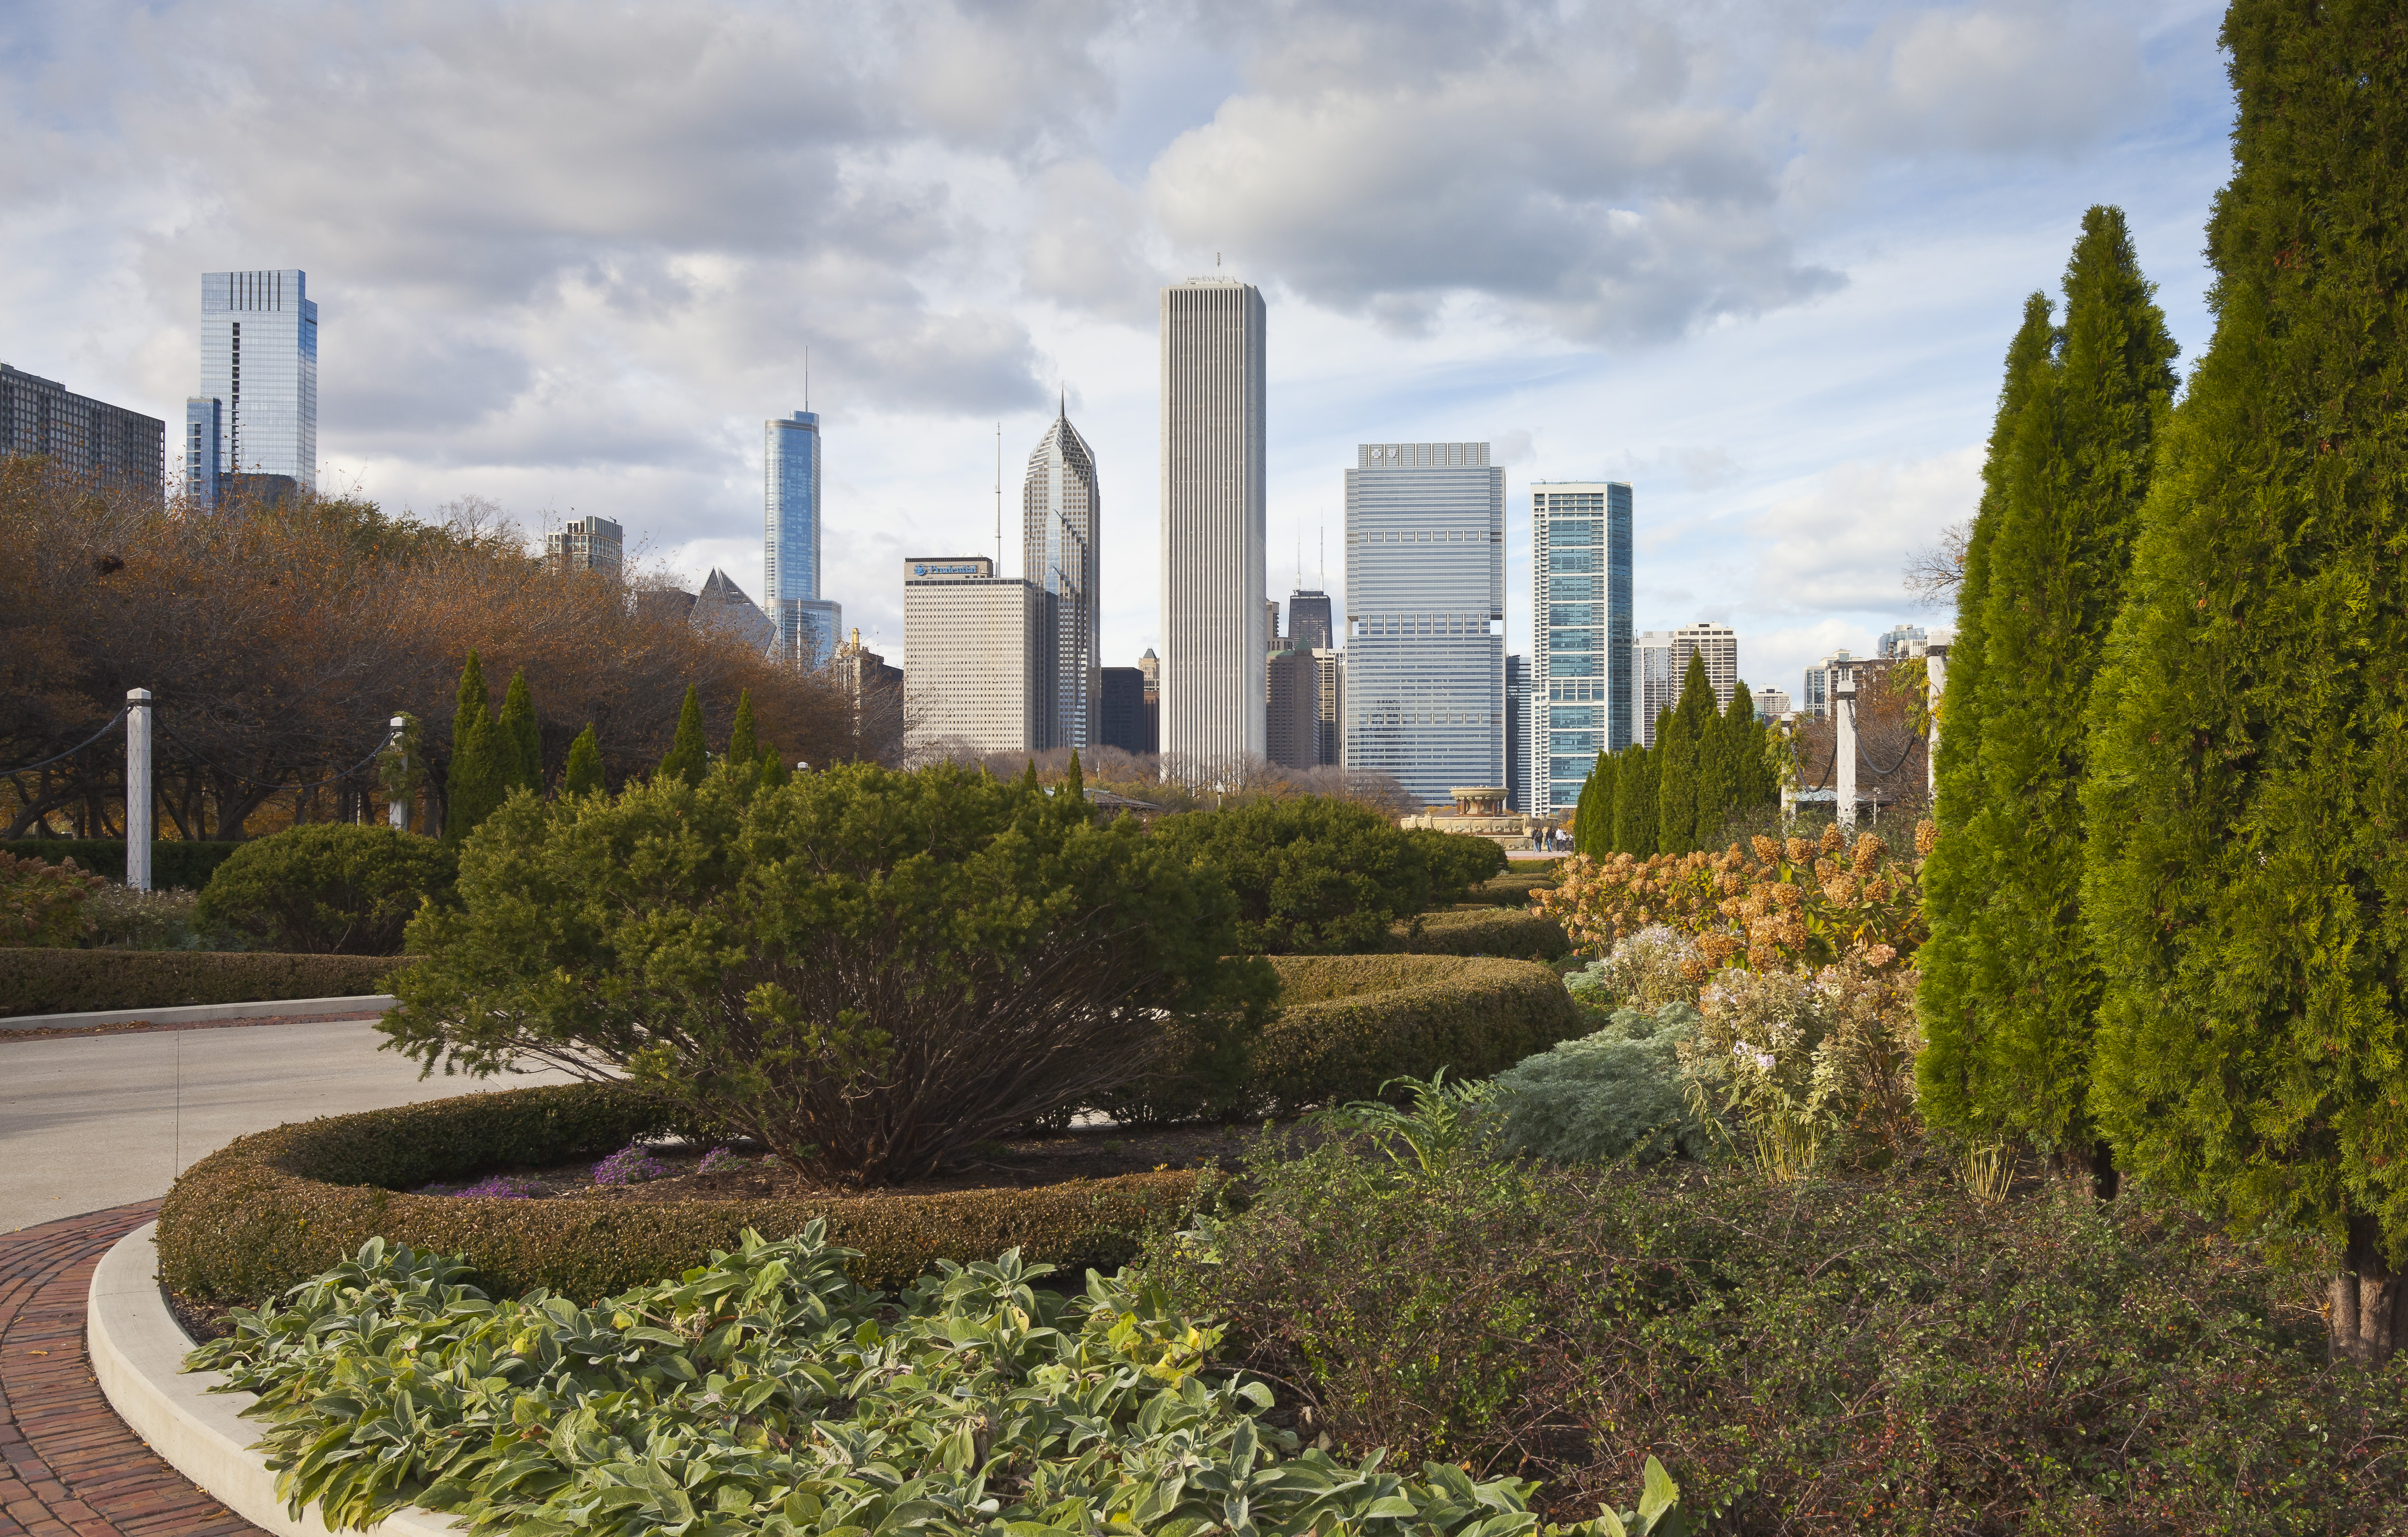 Grant Park in Chicago, Illinois, by Diego Delso (CC BY-SA 3.0)